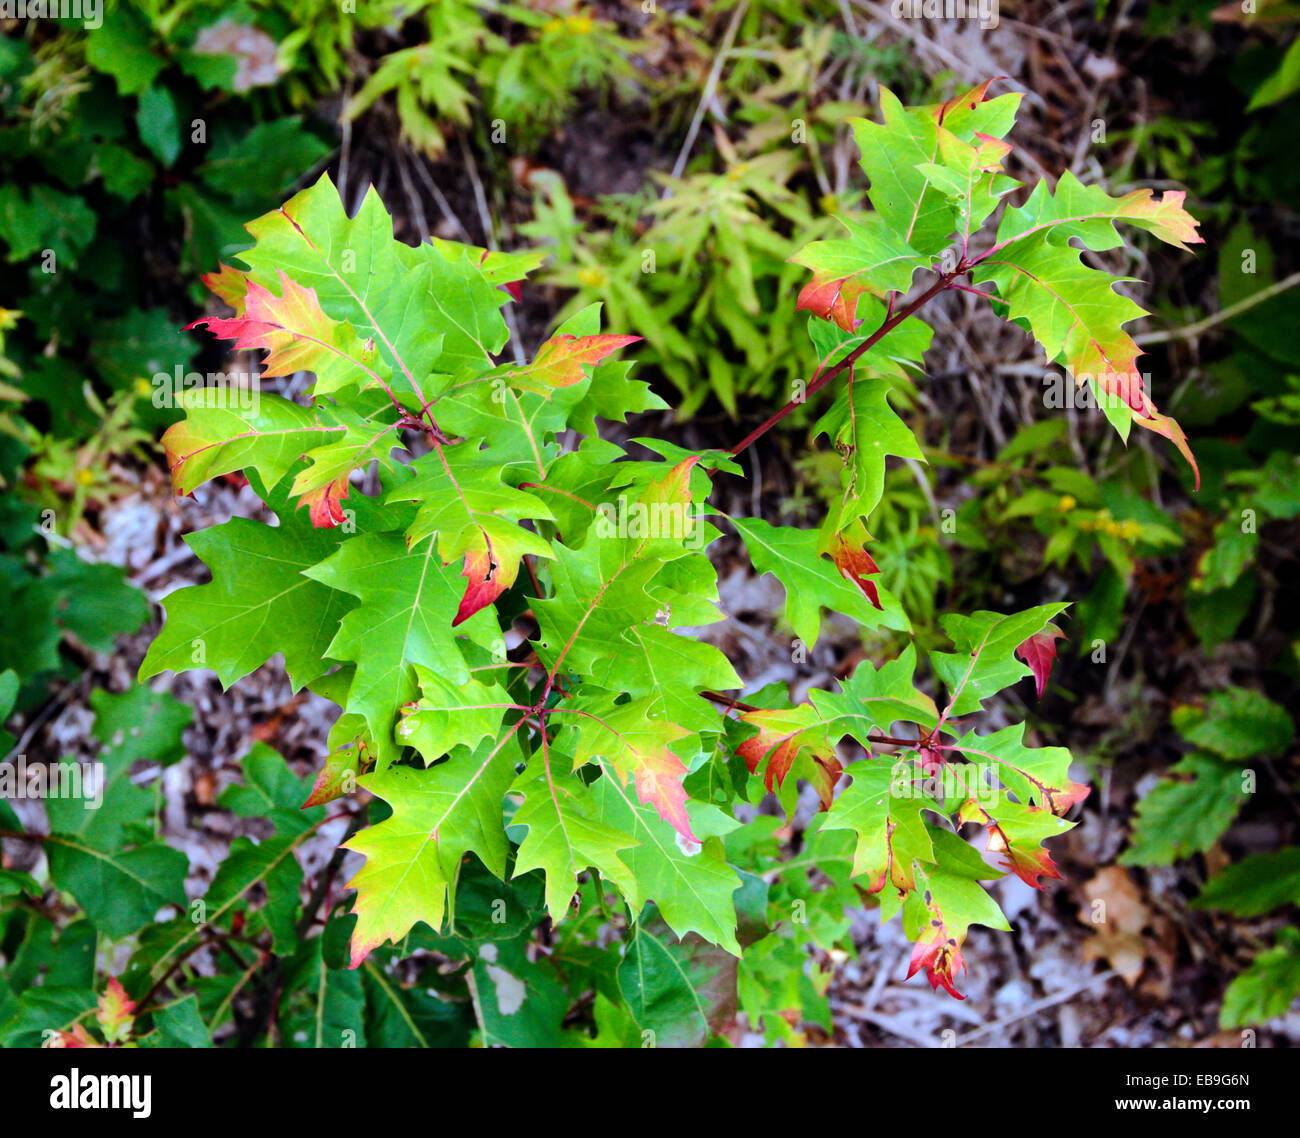 Oak tree sapling changing color colour from green to fall foliage ...